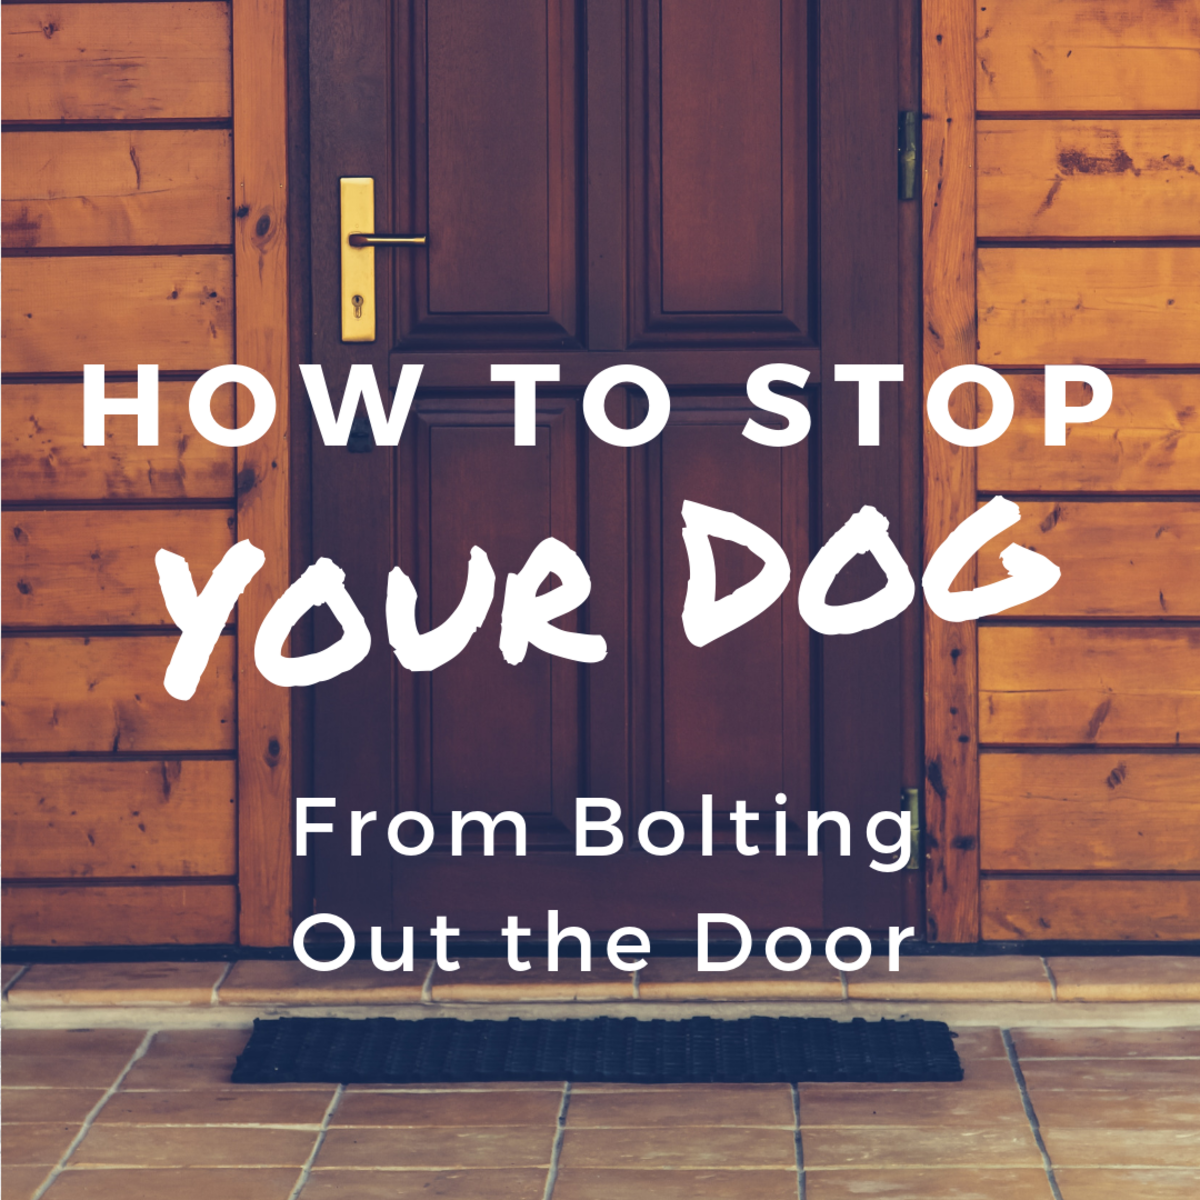 How to Prevent Your Dog From Running Out of the Door